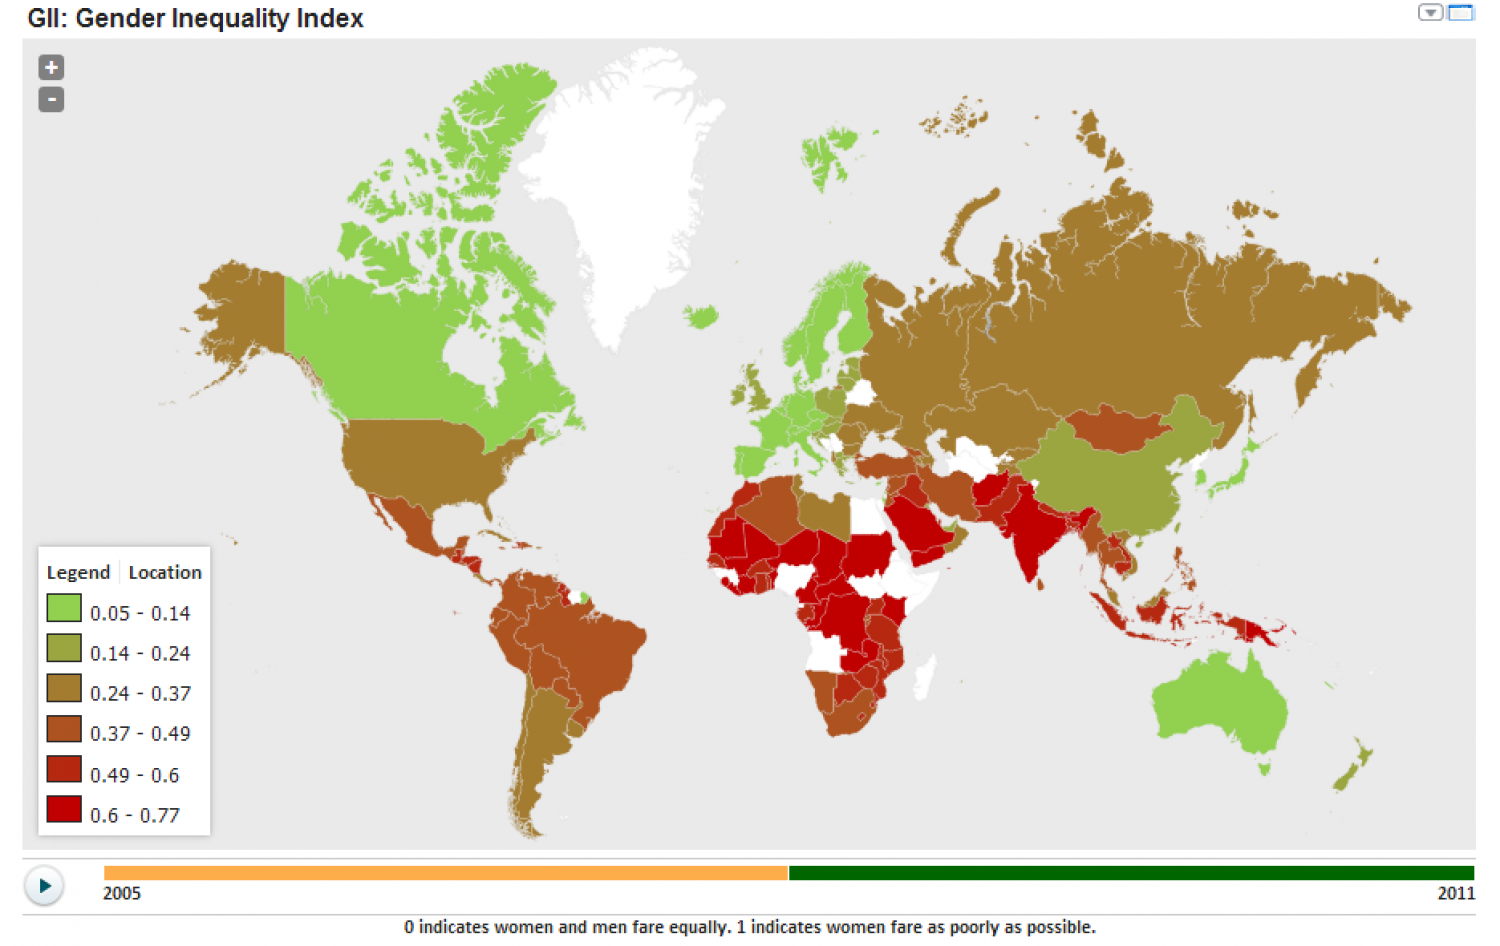 Gender Inequality Index around the world Infographic